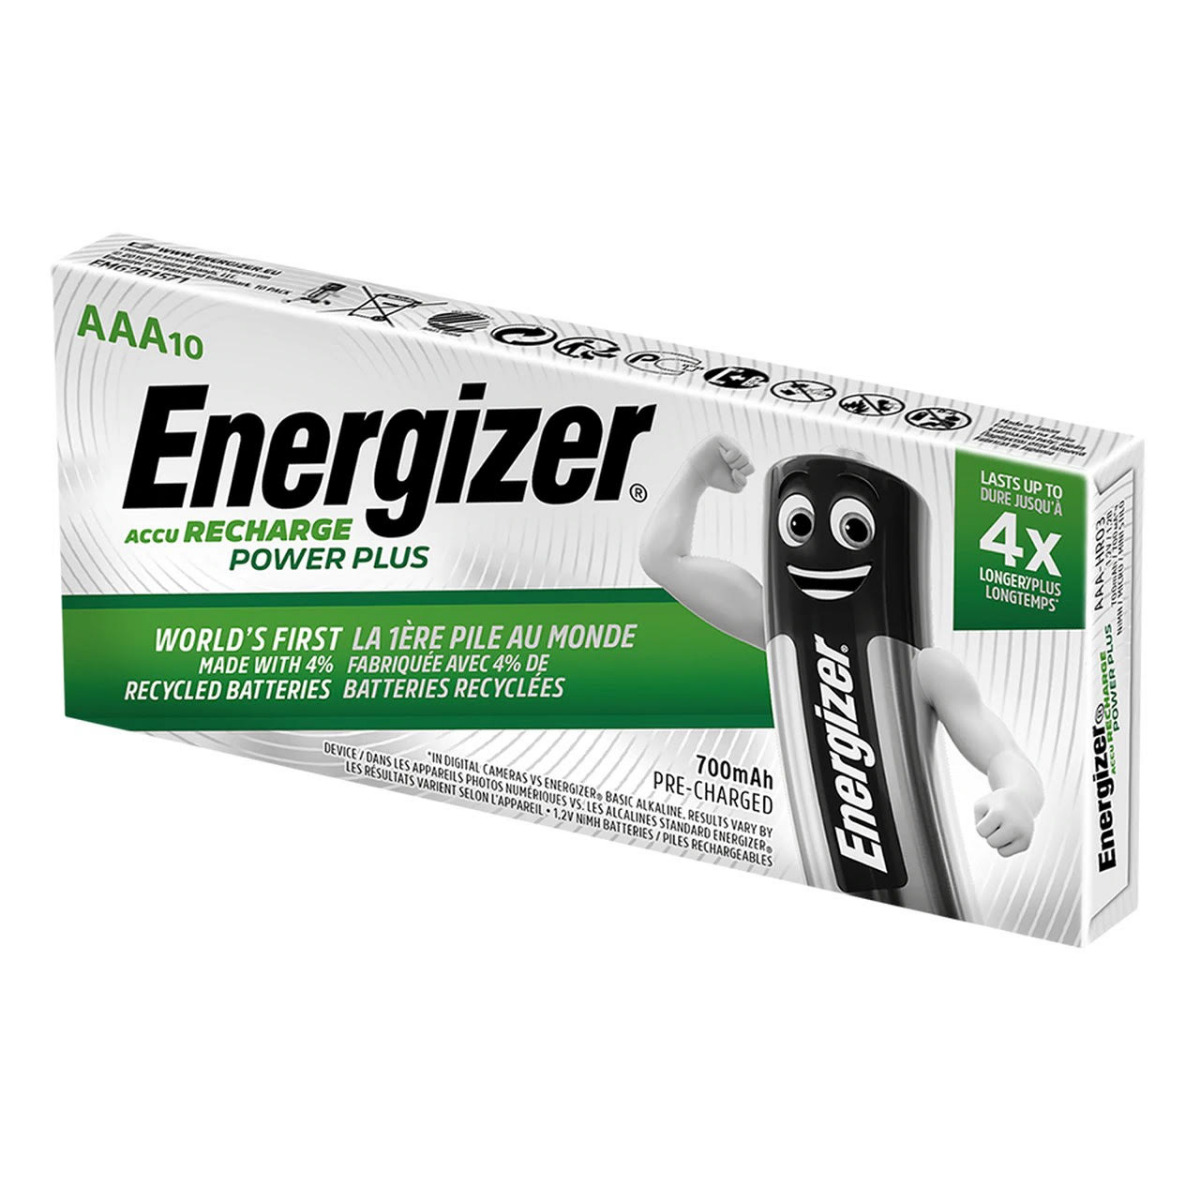 Energizer Power Plus AAA HR03 700mAh Pre-charged Rechargeable Batteries | 10 Pack